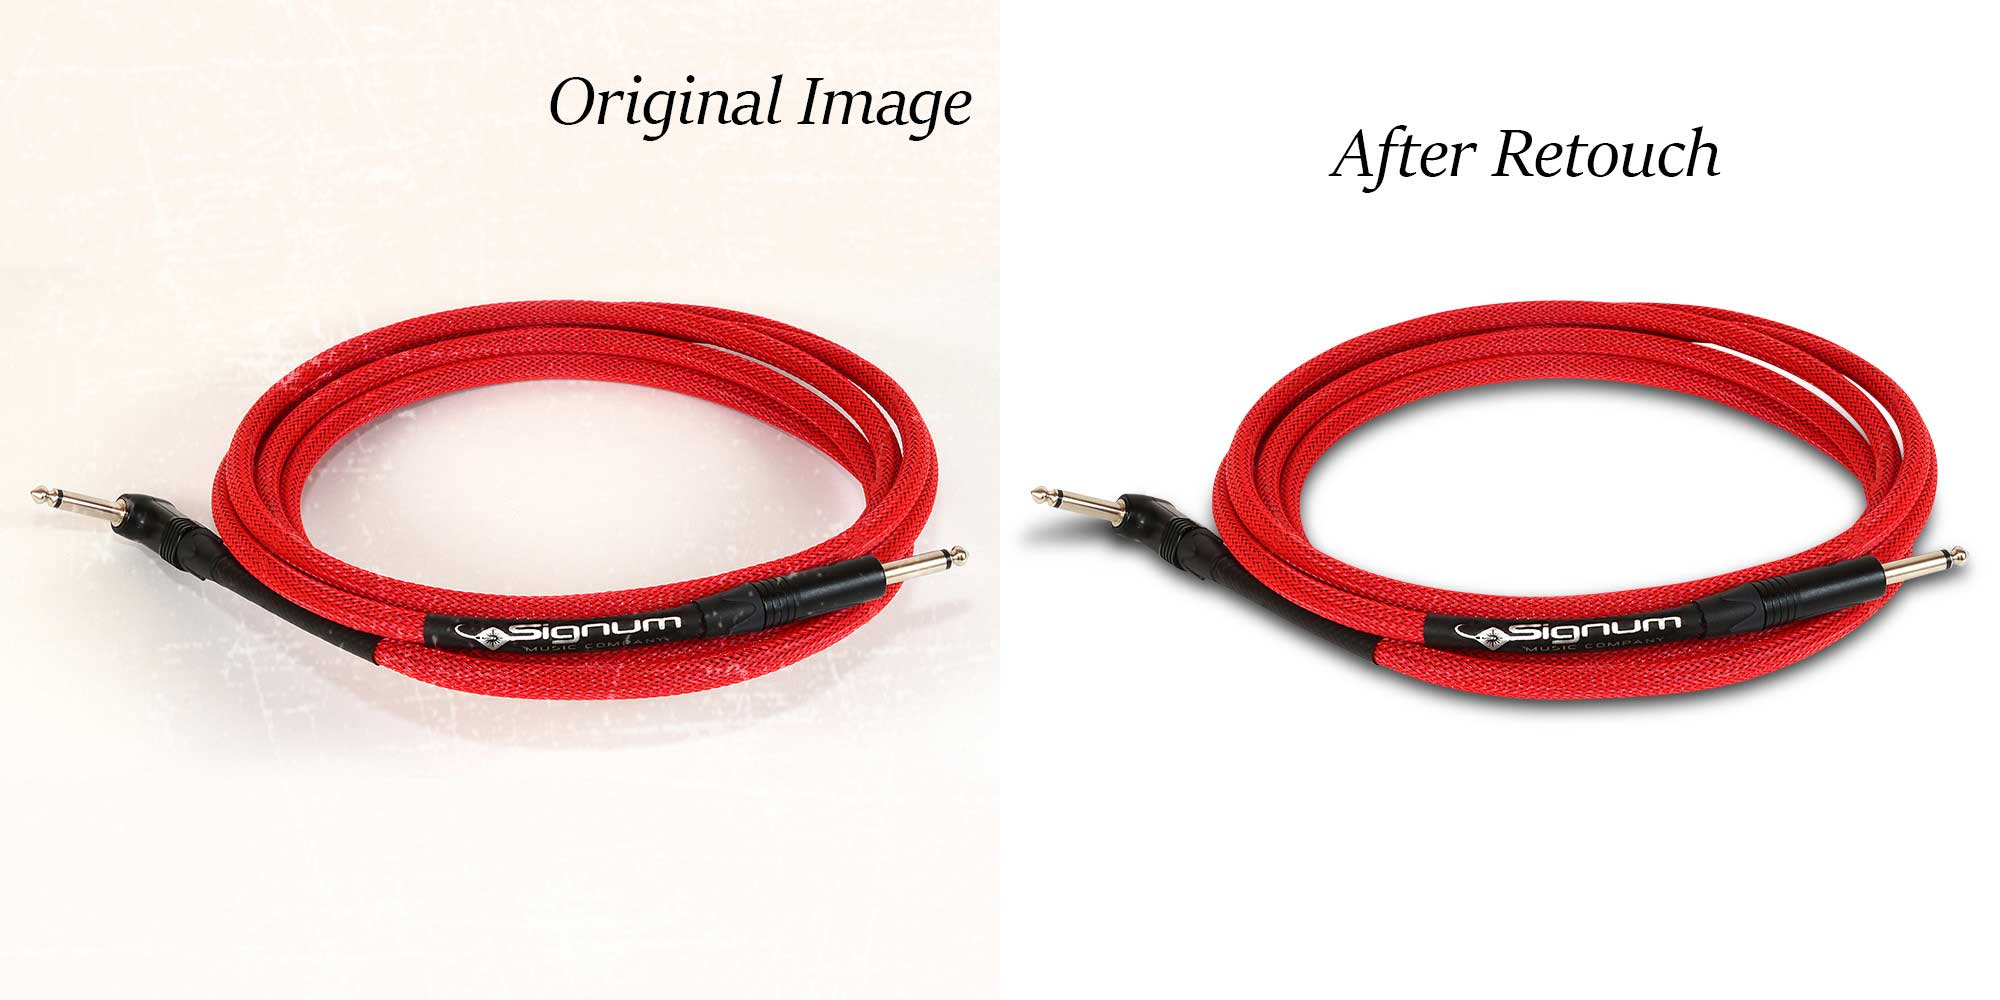 product photo editing- Clipping path graphics